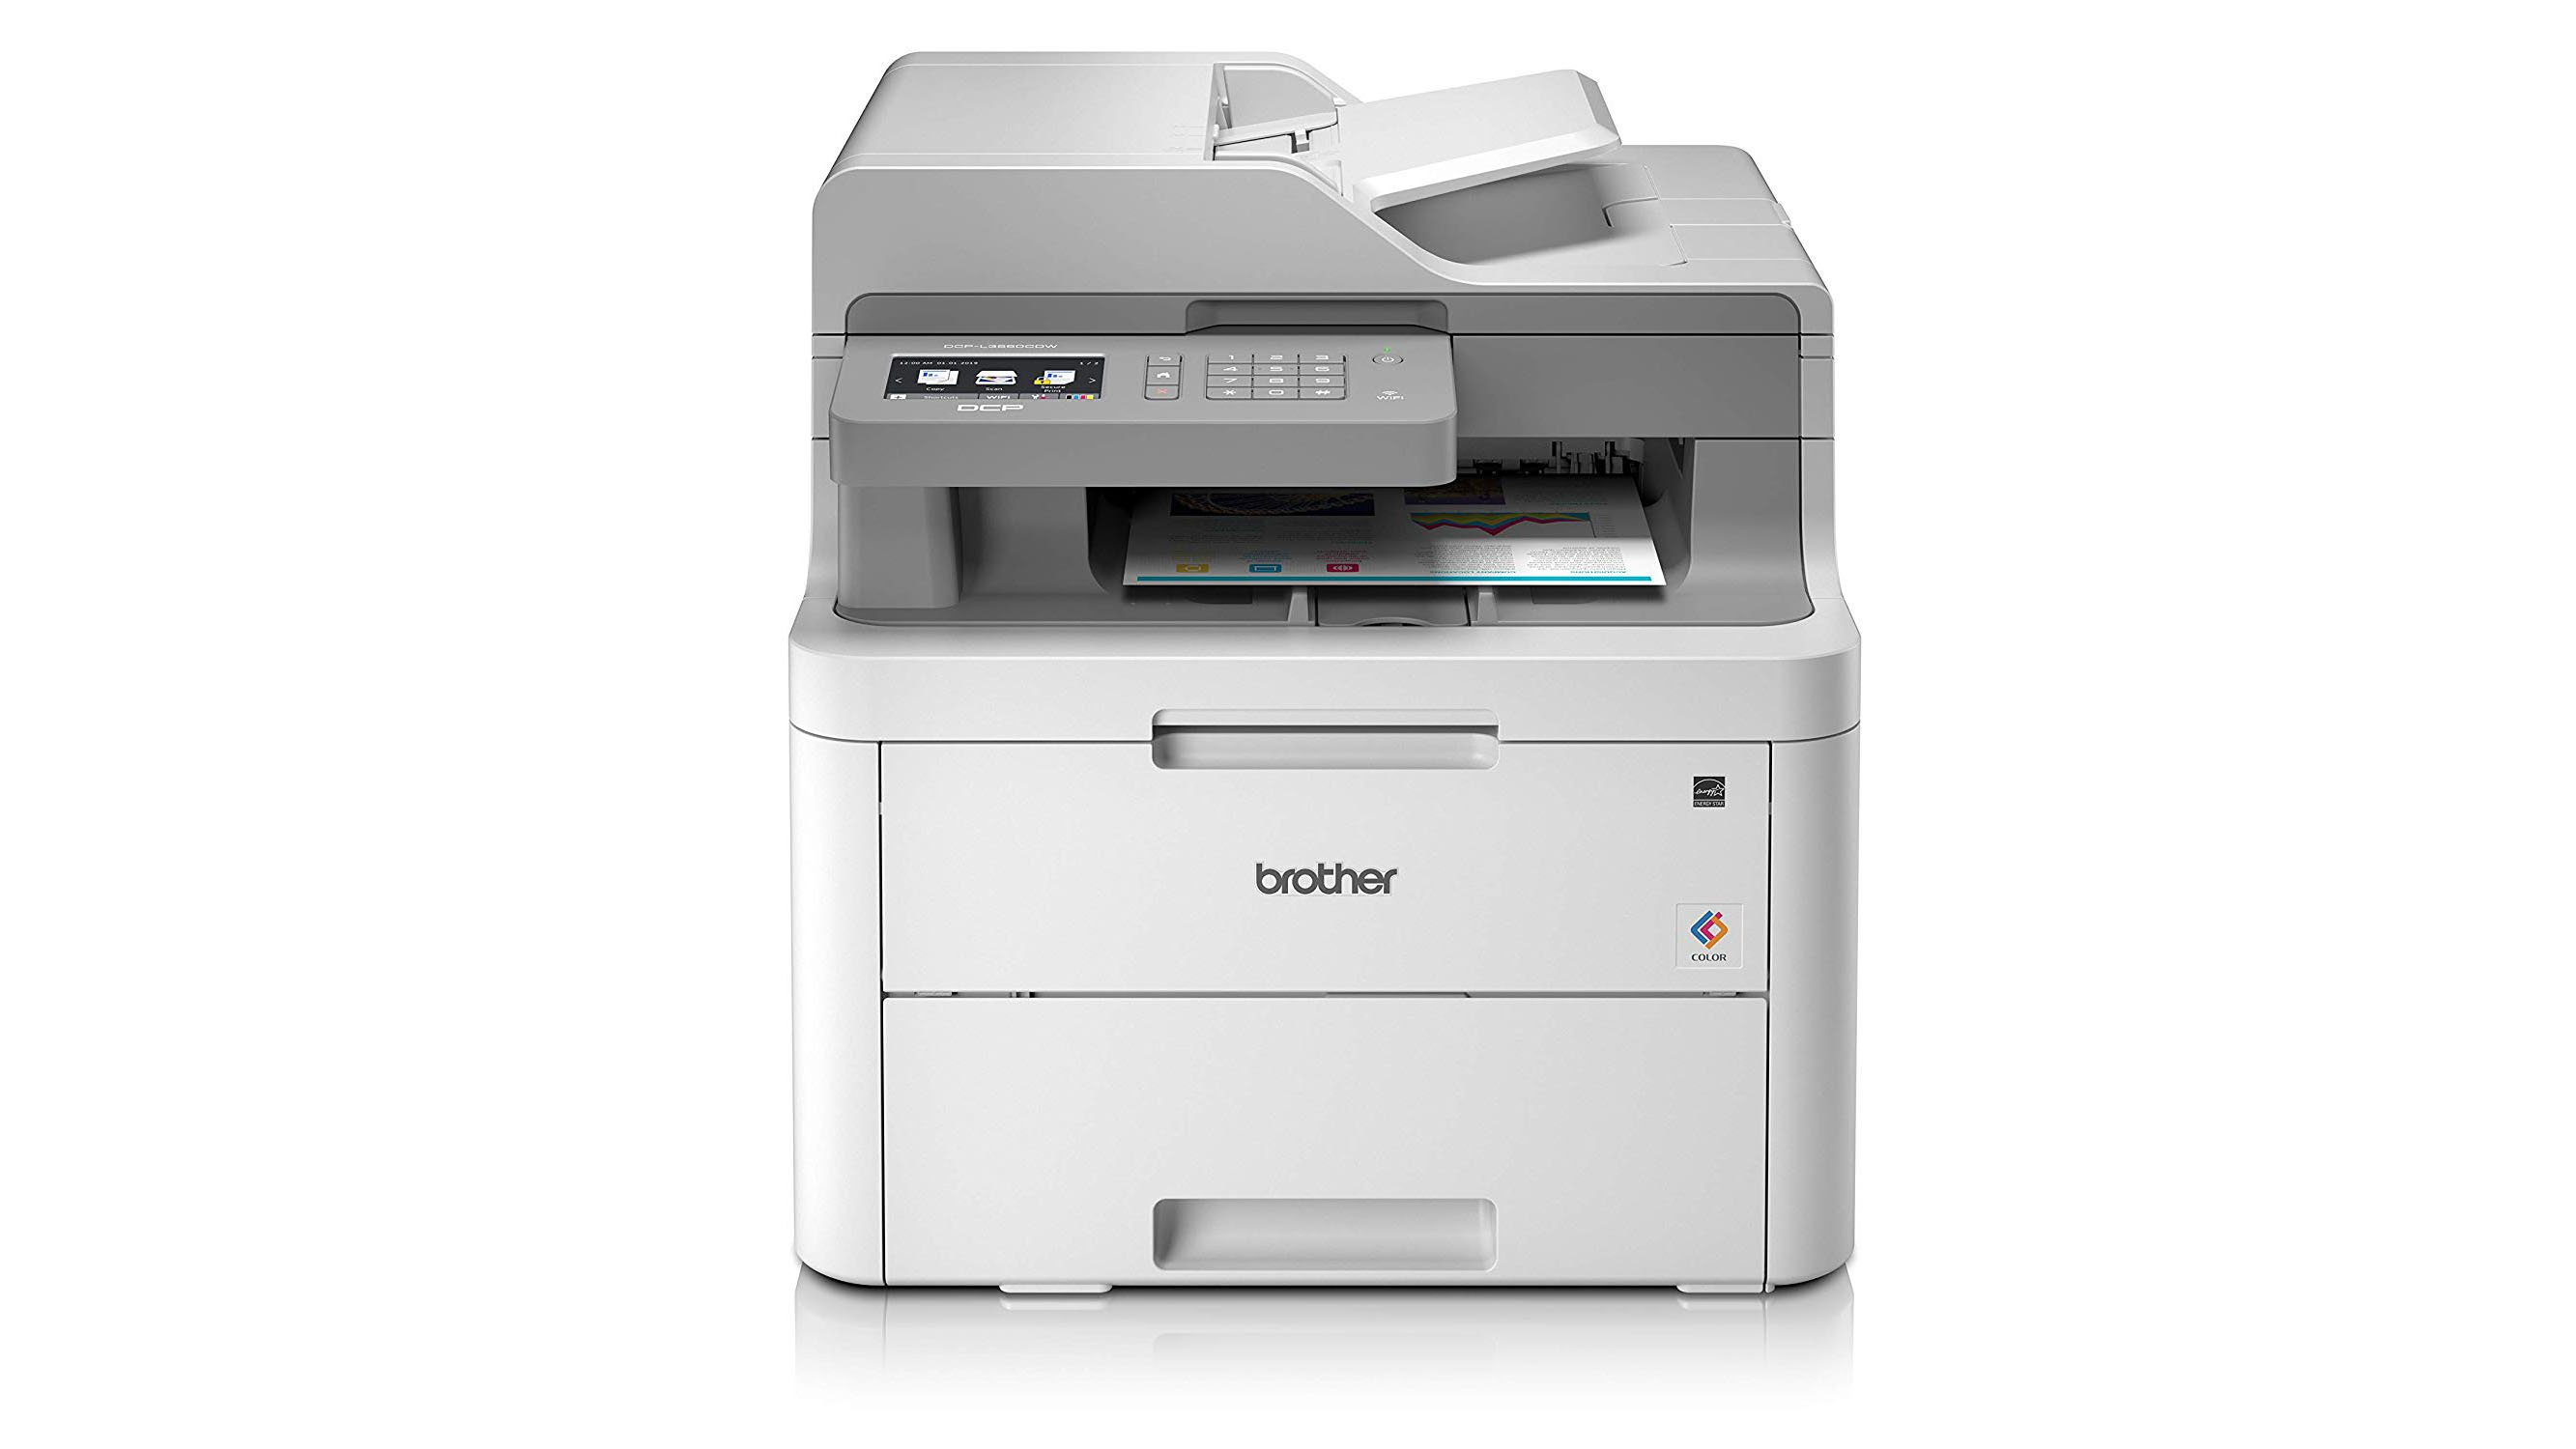 Brother DCP-L3550CDW review: A reliable printer outperformed